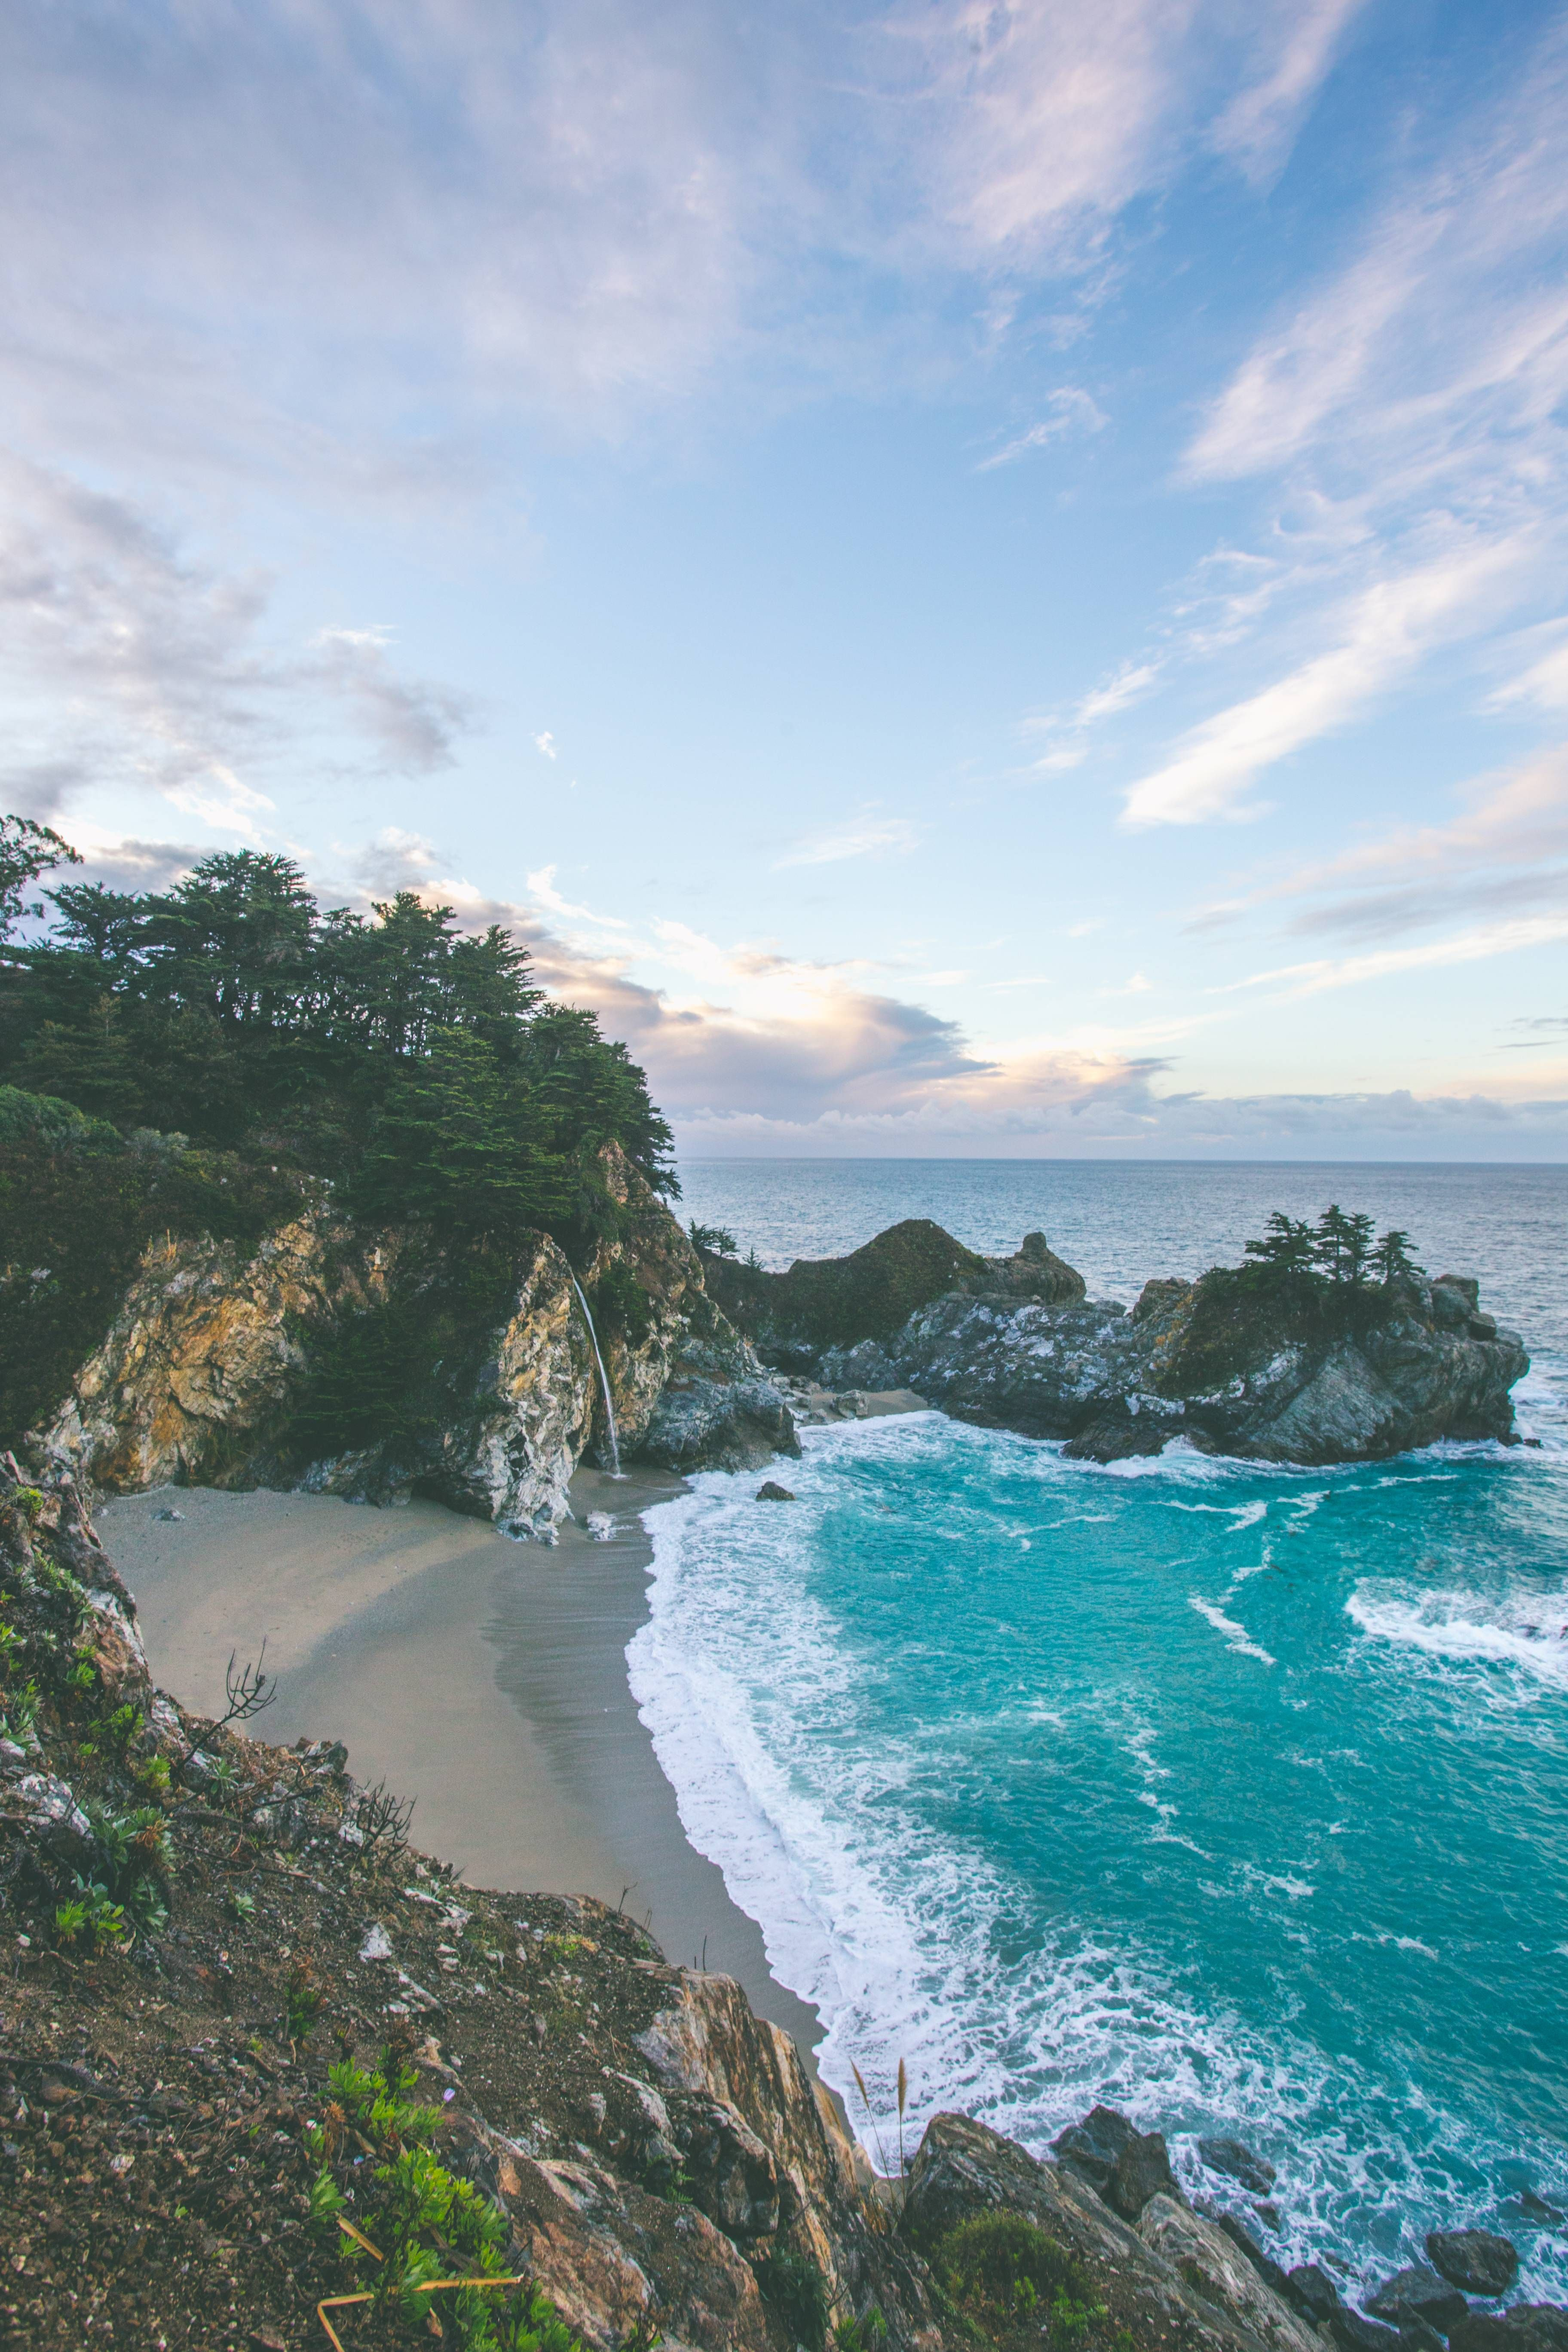 Oc good morning from mcway falls reddit nature